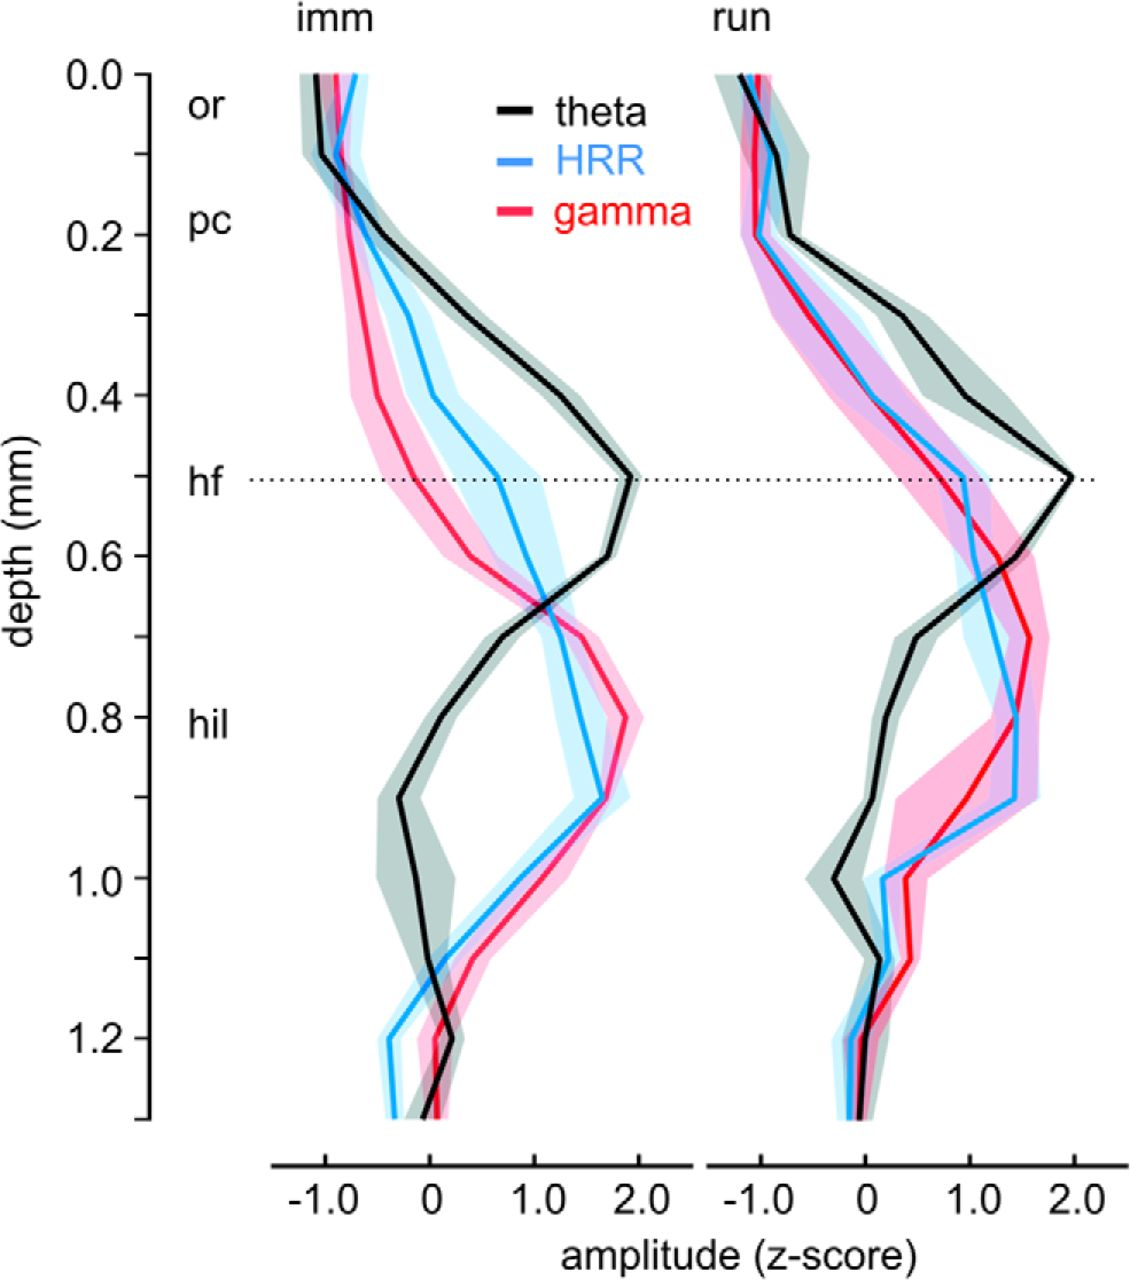 Hippocampal Respiration Driven Rhythm Distinct From Theta Nichrome Wiring In Parallel Download Figure